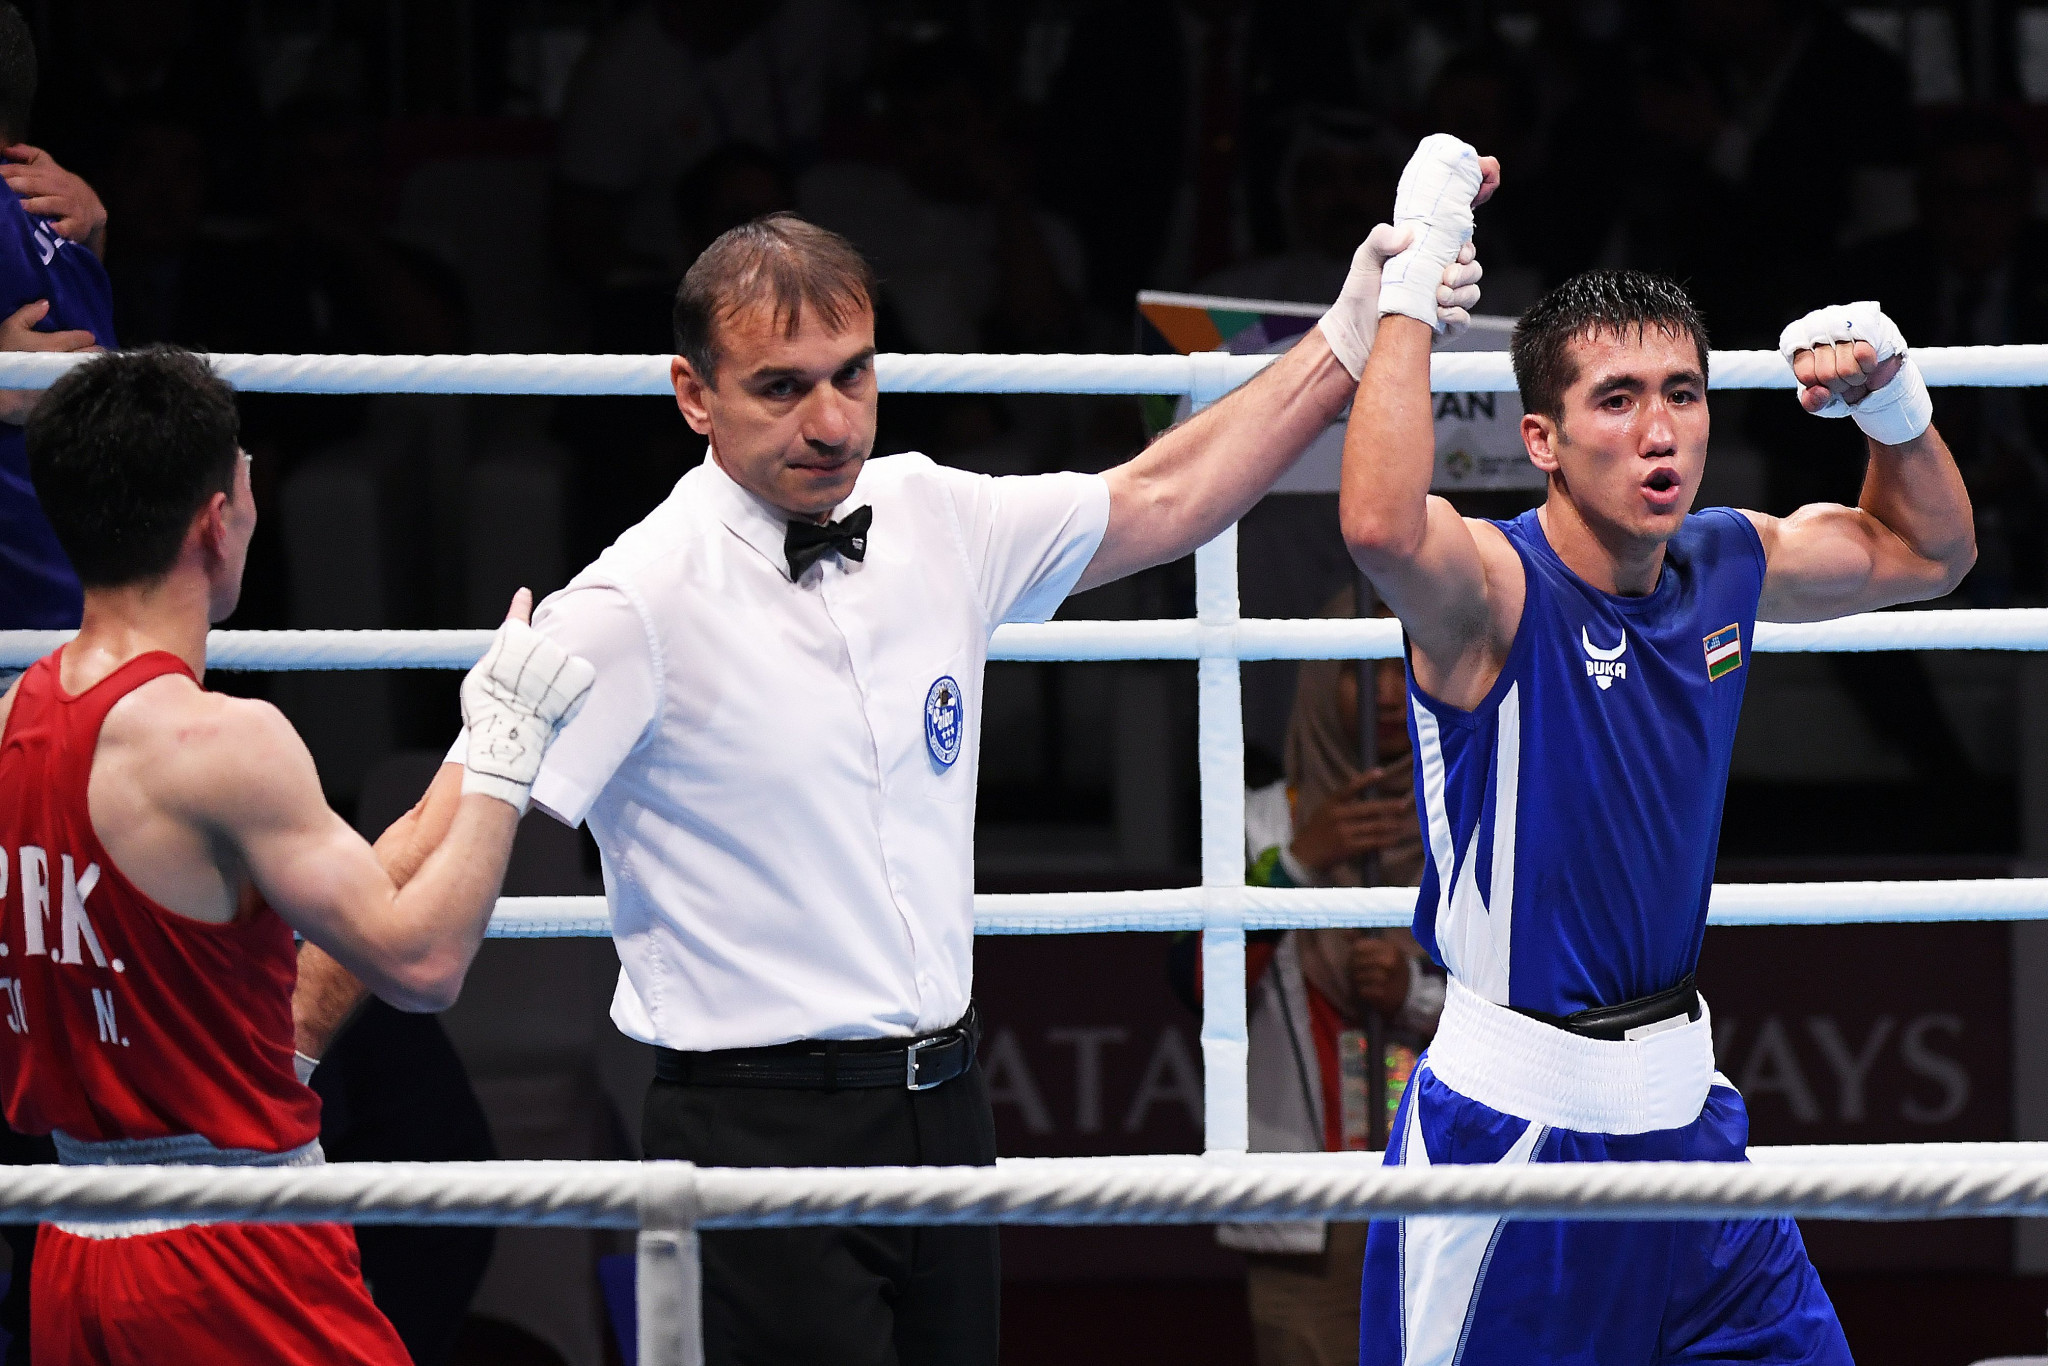 AIBA President issues warning to judges ahead of Asian Championships